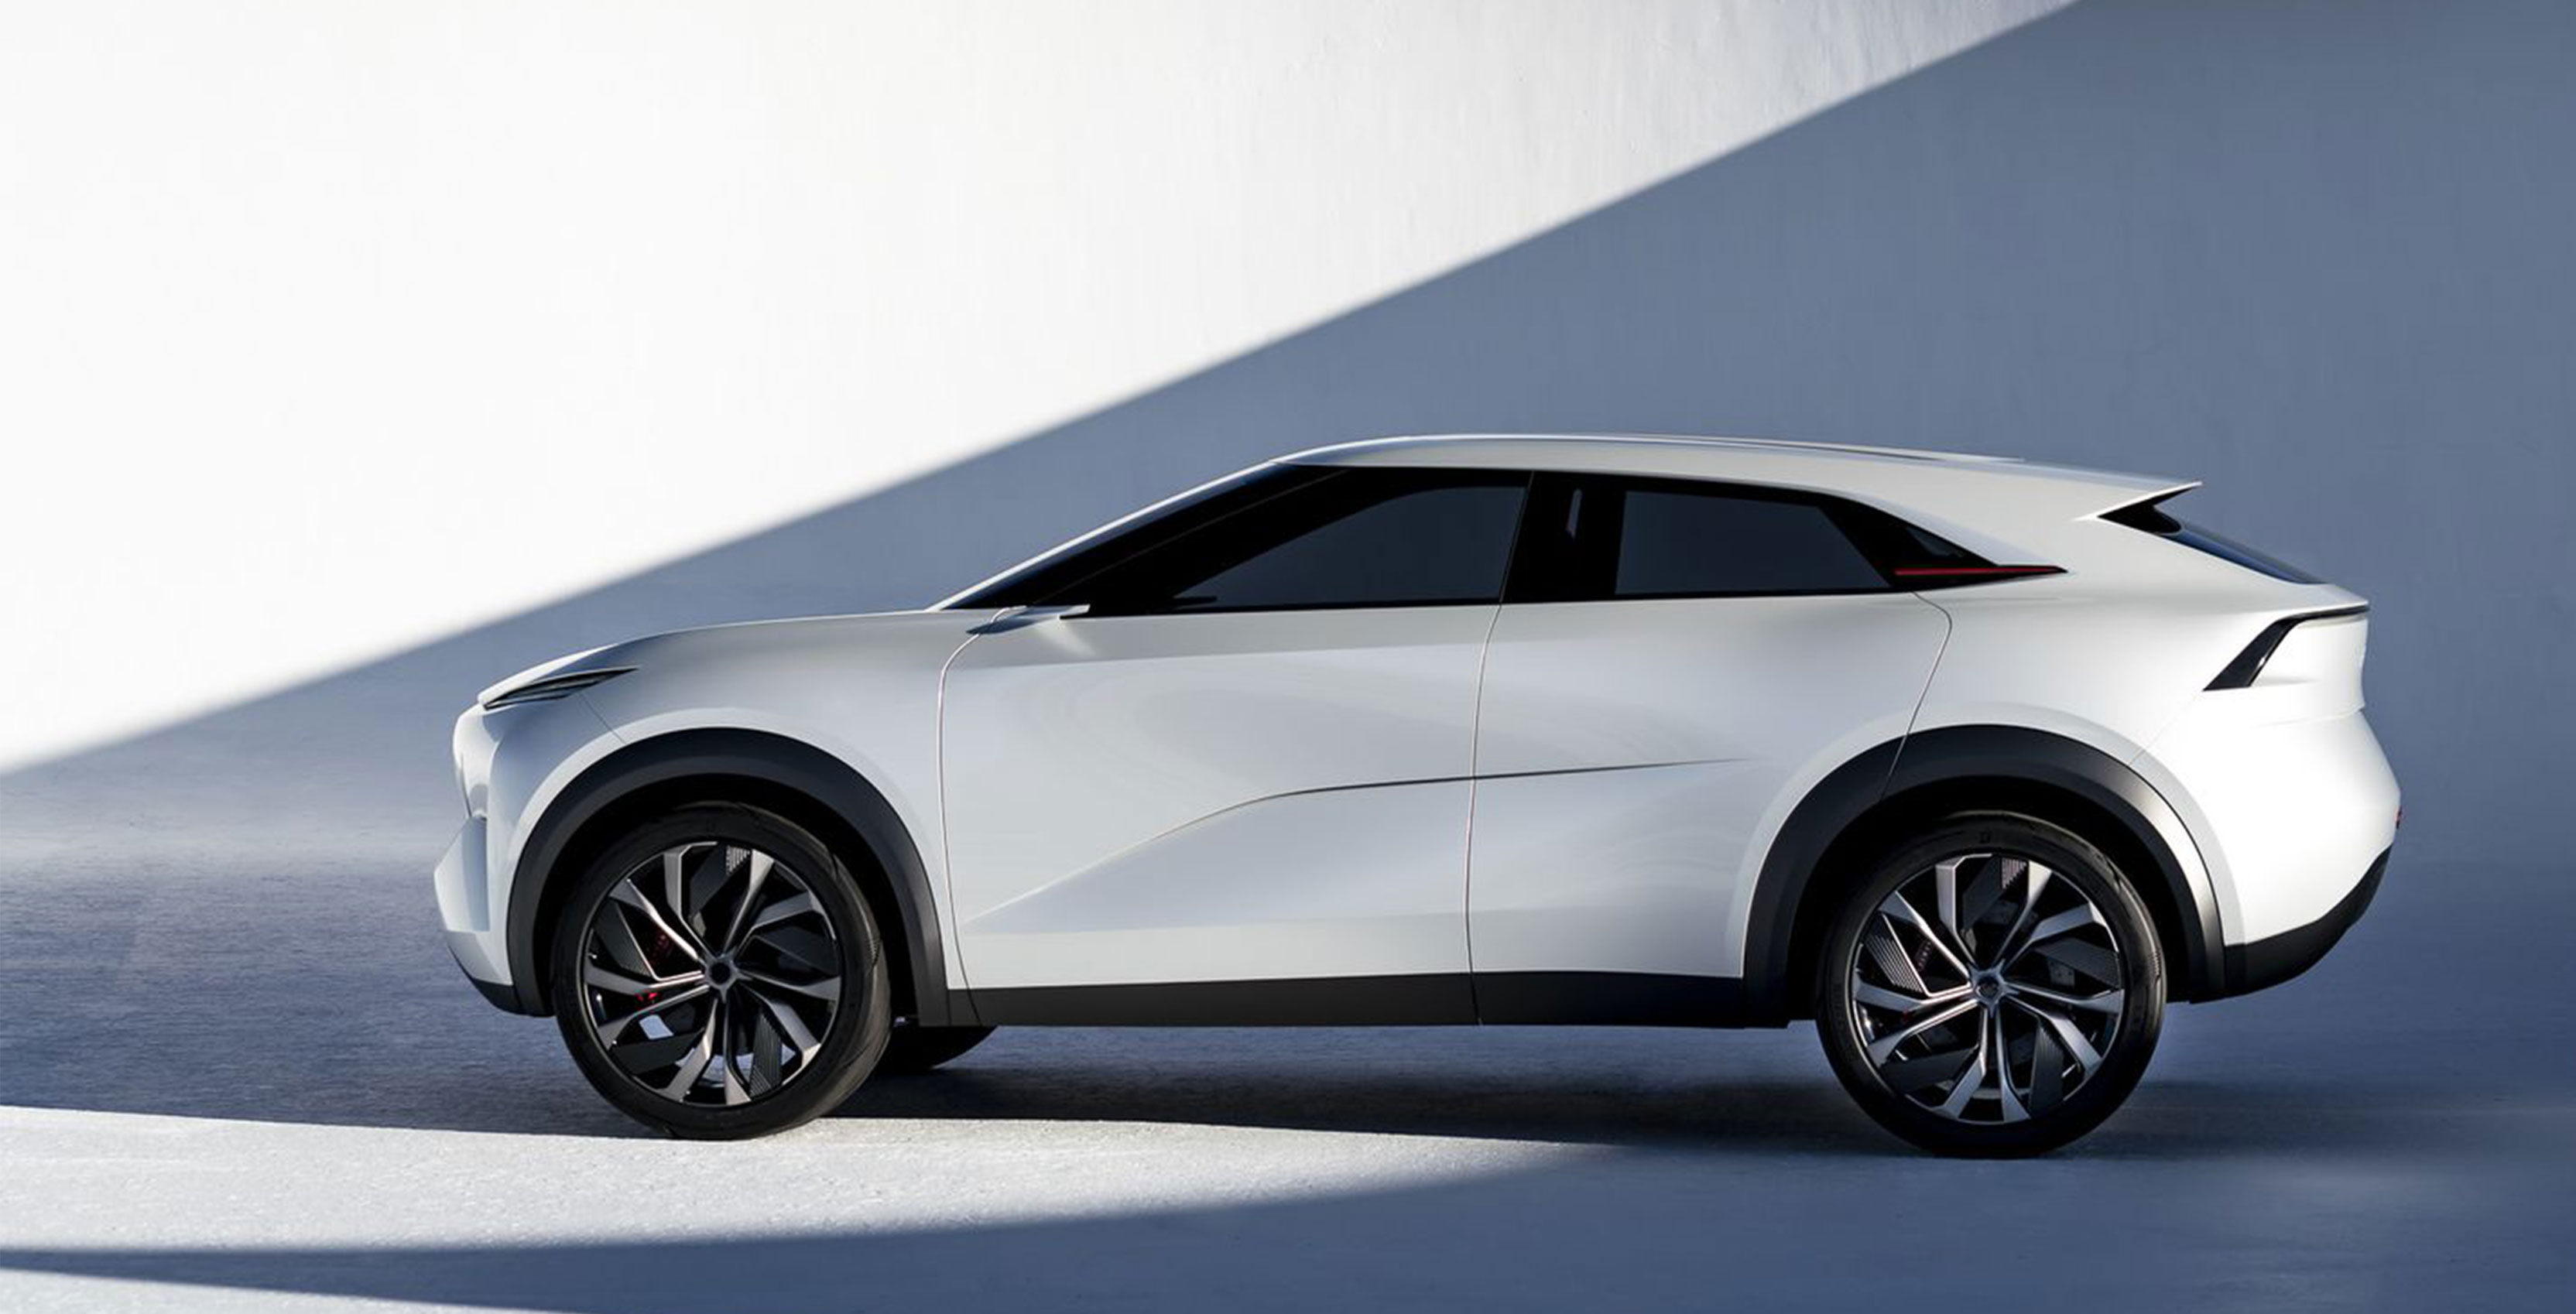 Infiniti demonstrates a stunning new electric concept car – shilfa